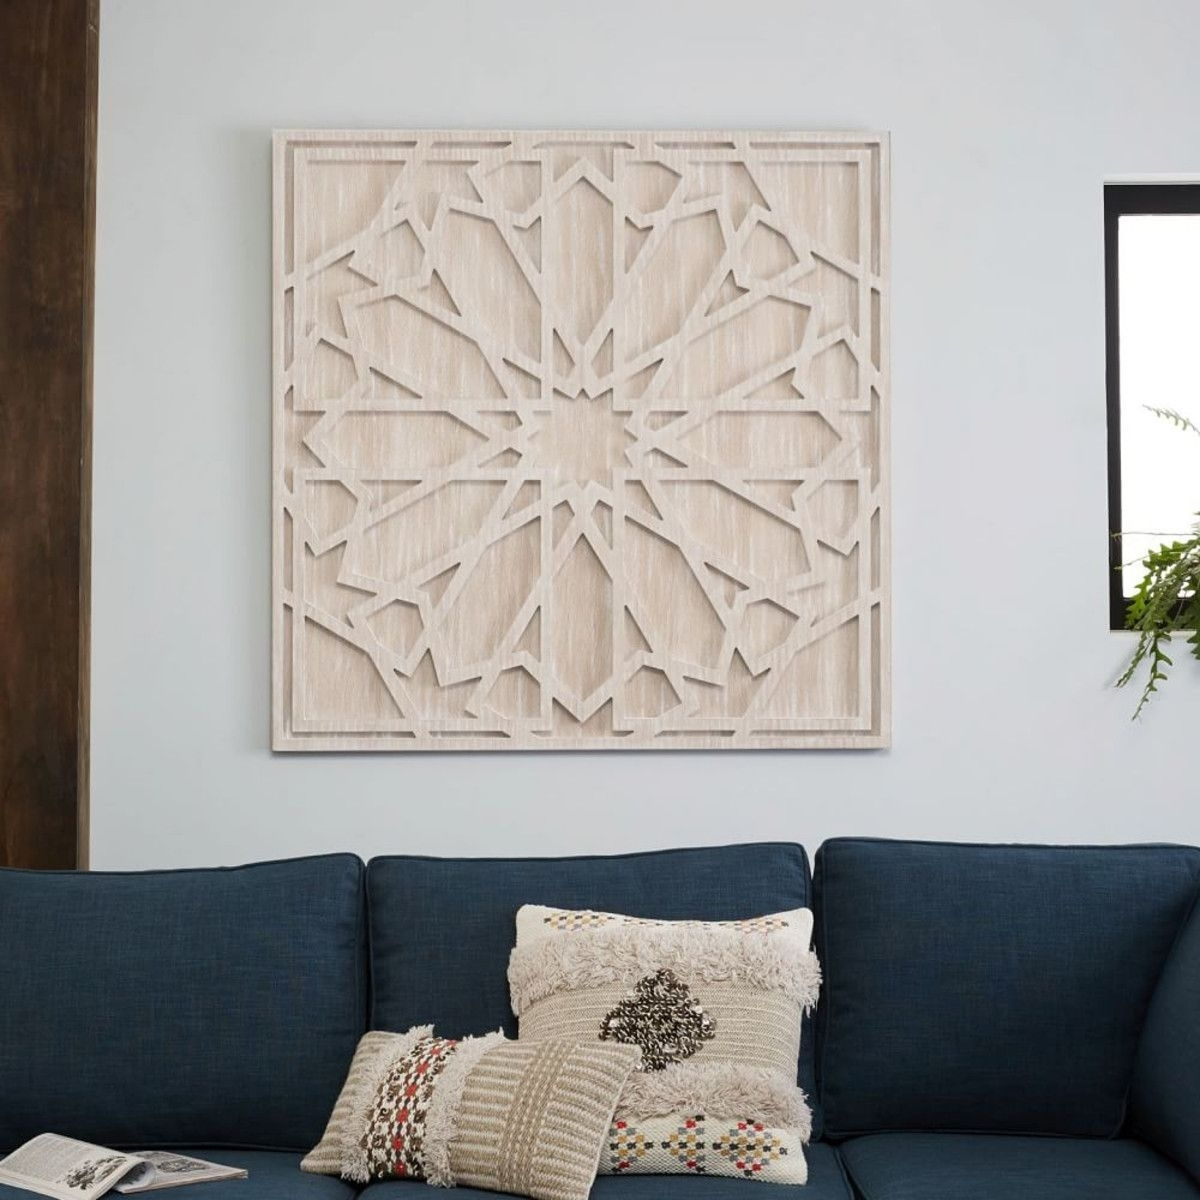 Whitewashed Wood Wall Art | Pinterest | Whitewash Wood, Wood Wall For Most Recently Released West Elm Wall Art (Gallery 5 of 20)